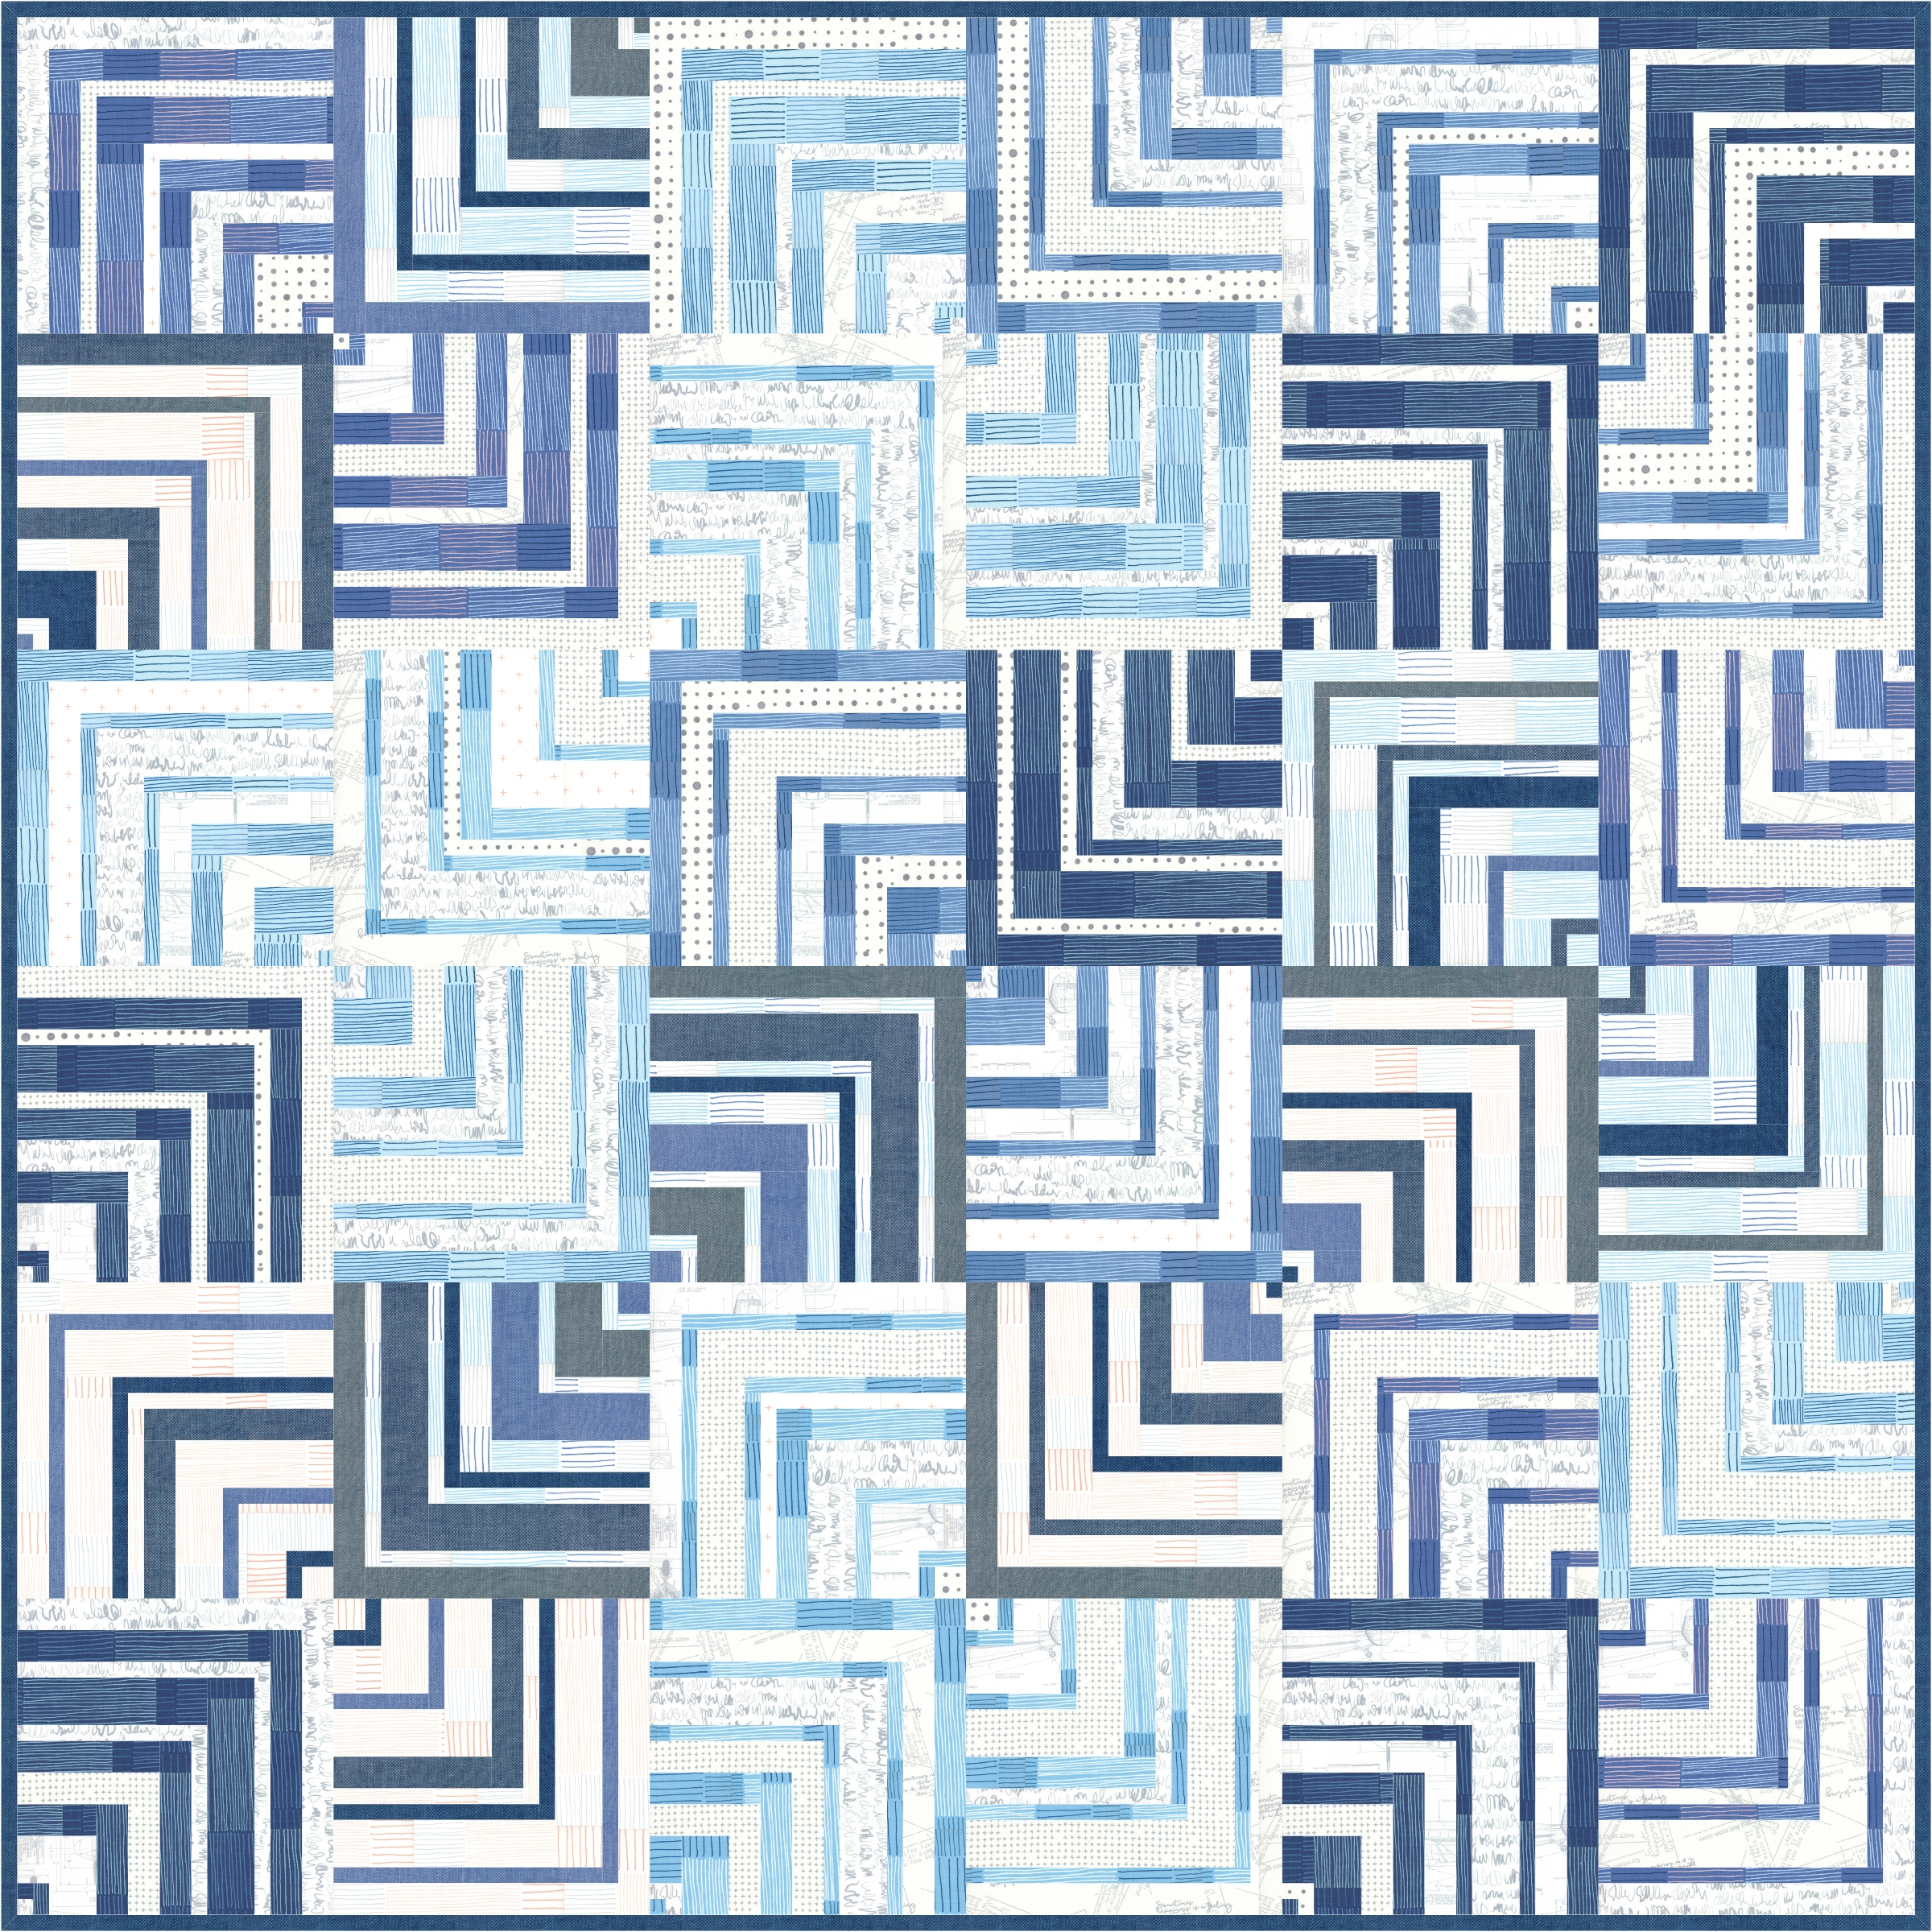 The Blue Labyrinth quilt pattern from Zen Chic is the perfect opportunity to combine the beautiful blue tones, crisp whites, and intriguing patterns of the newest fabric collection Breeze.